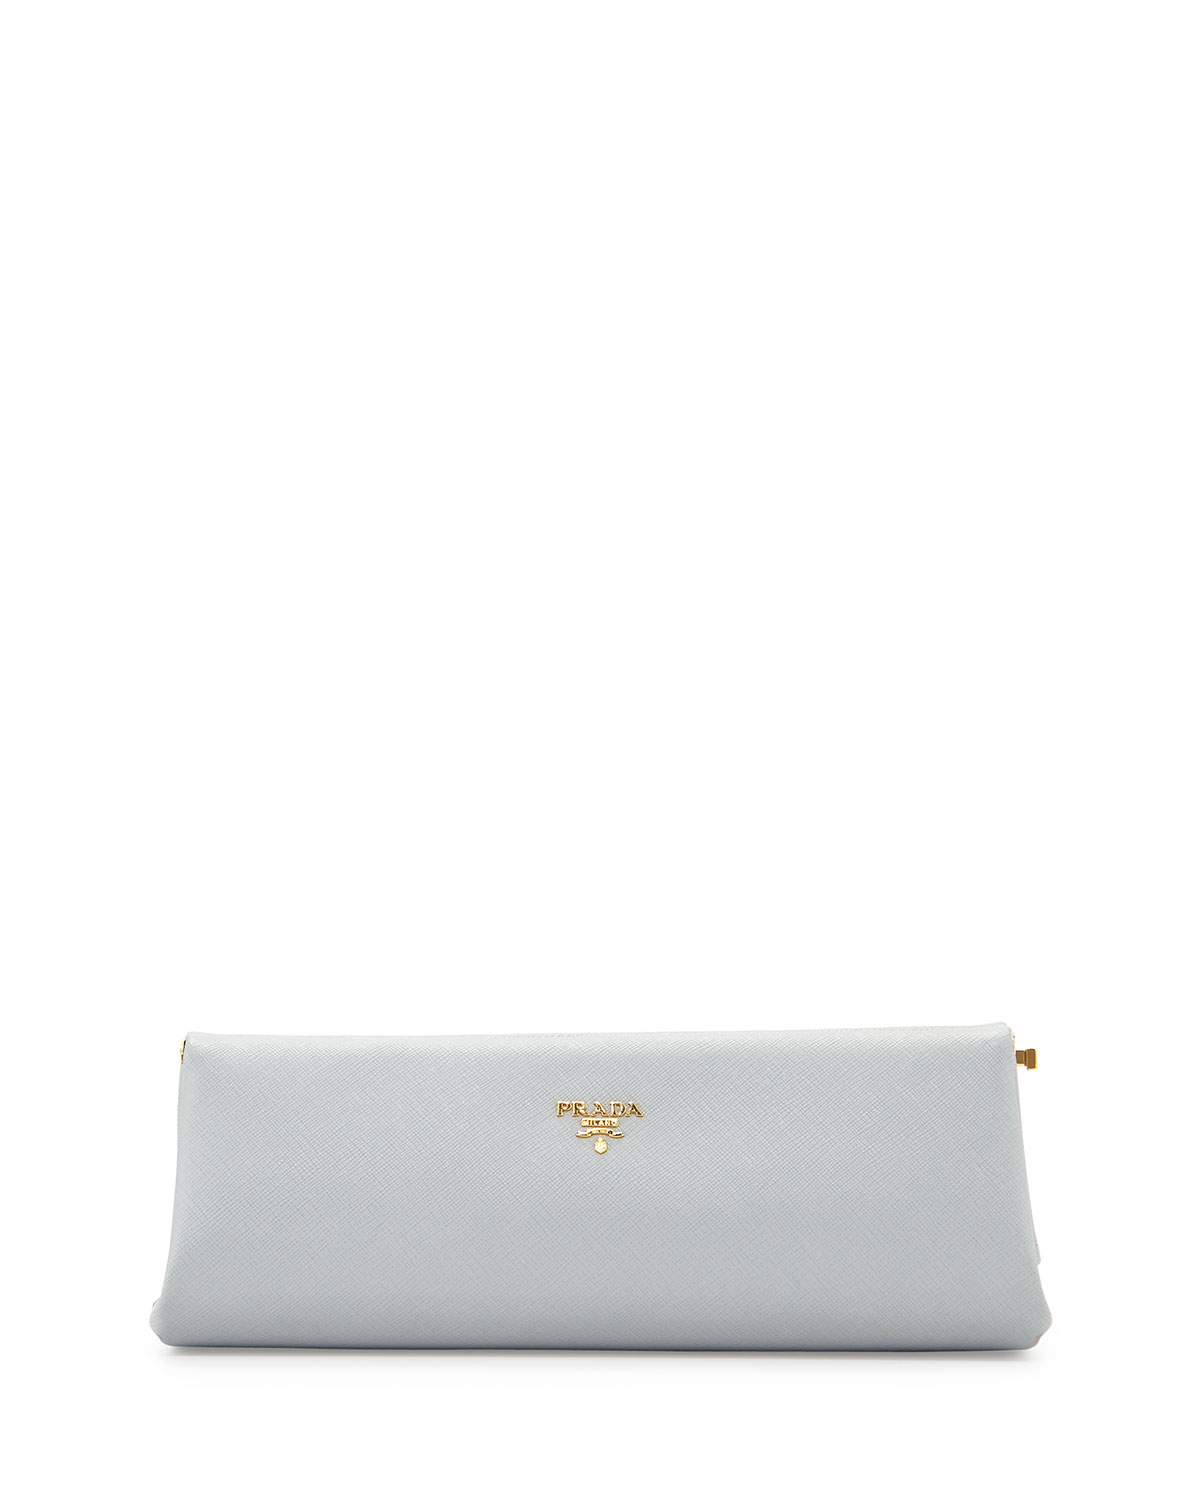 Saffiano East-West Frame Clutch Bag, Light Gray (Granito)